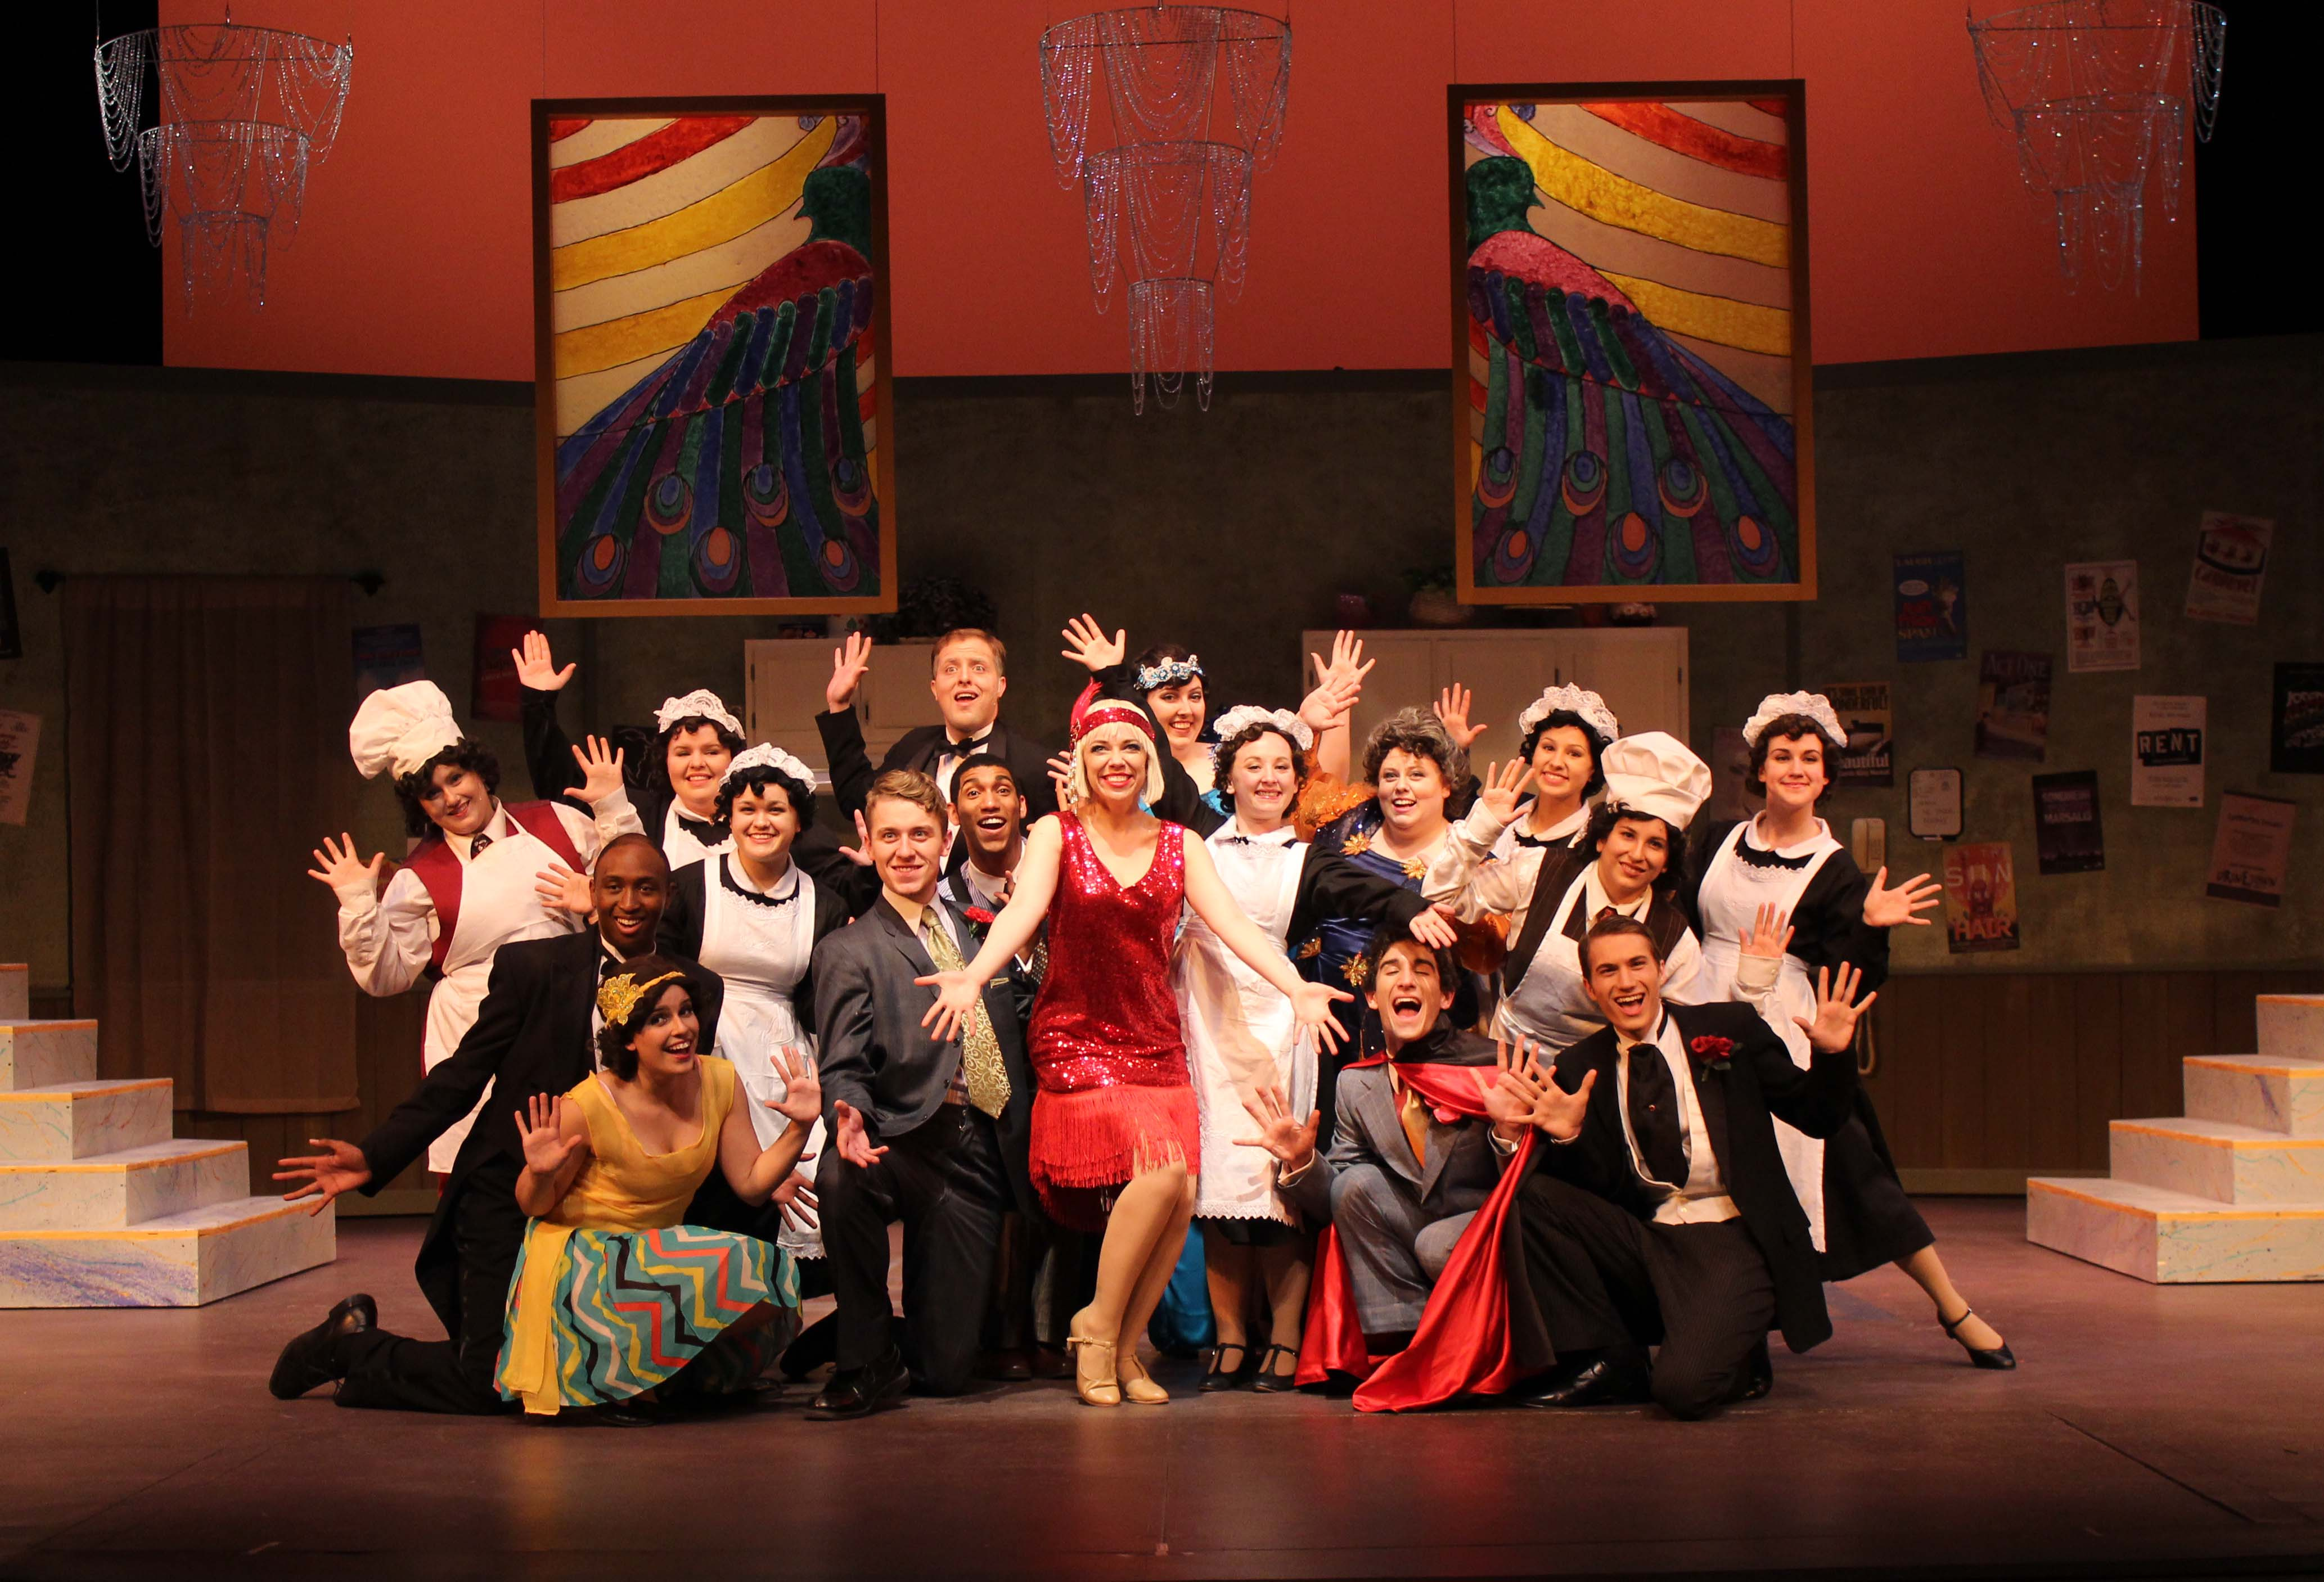 A scene from The Drowsy Chaperone